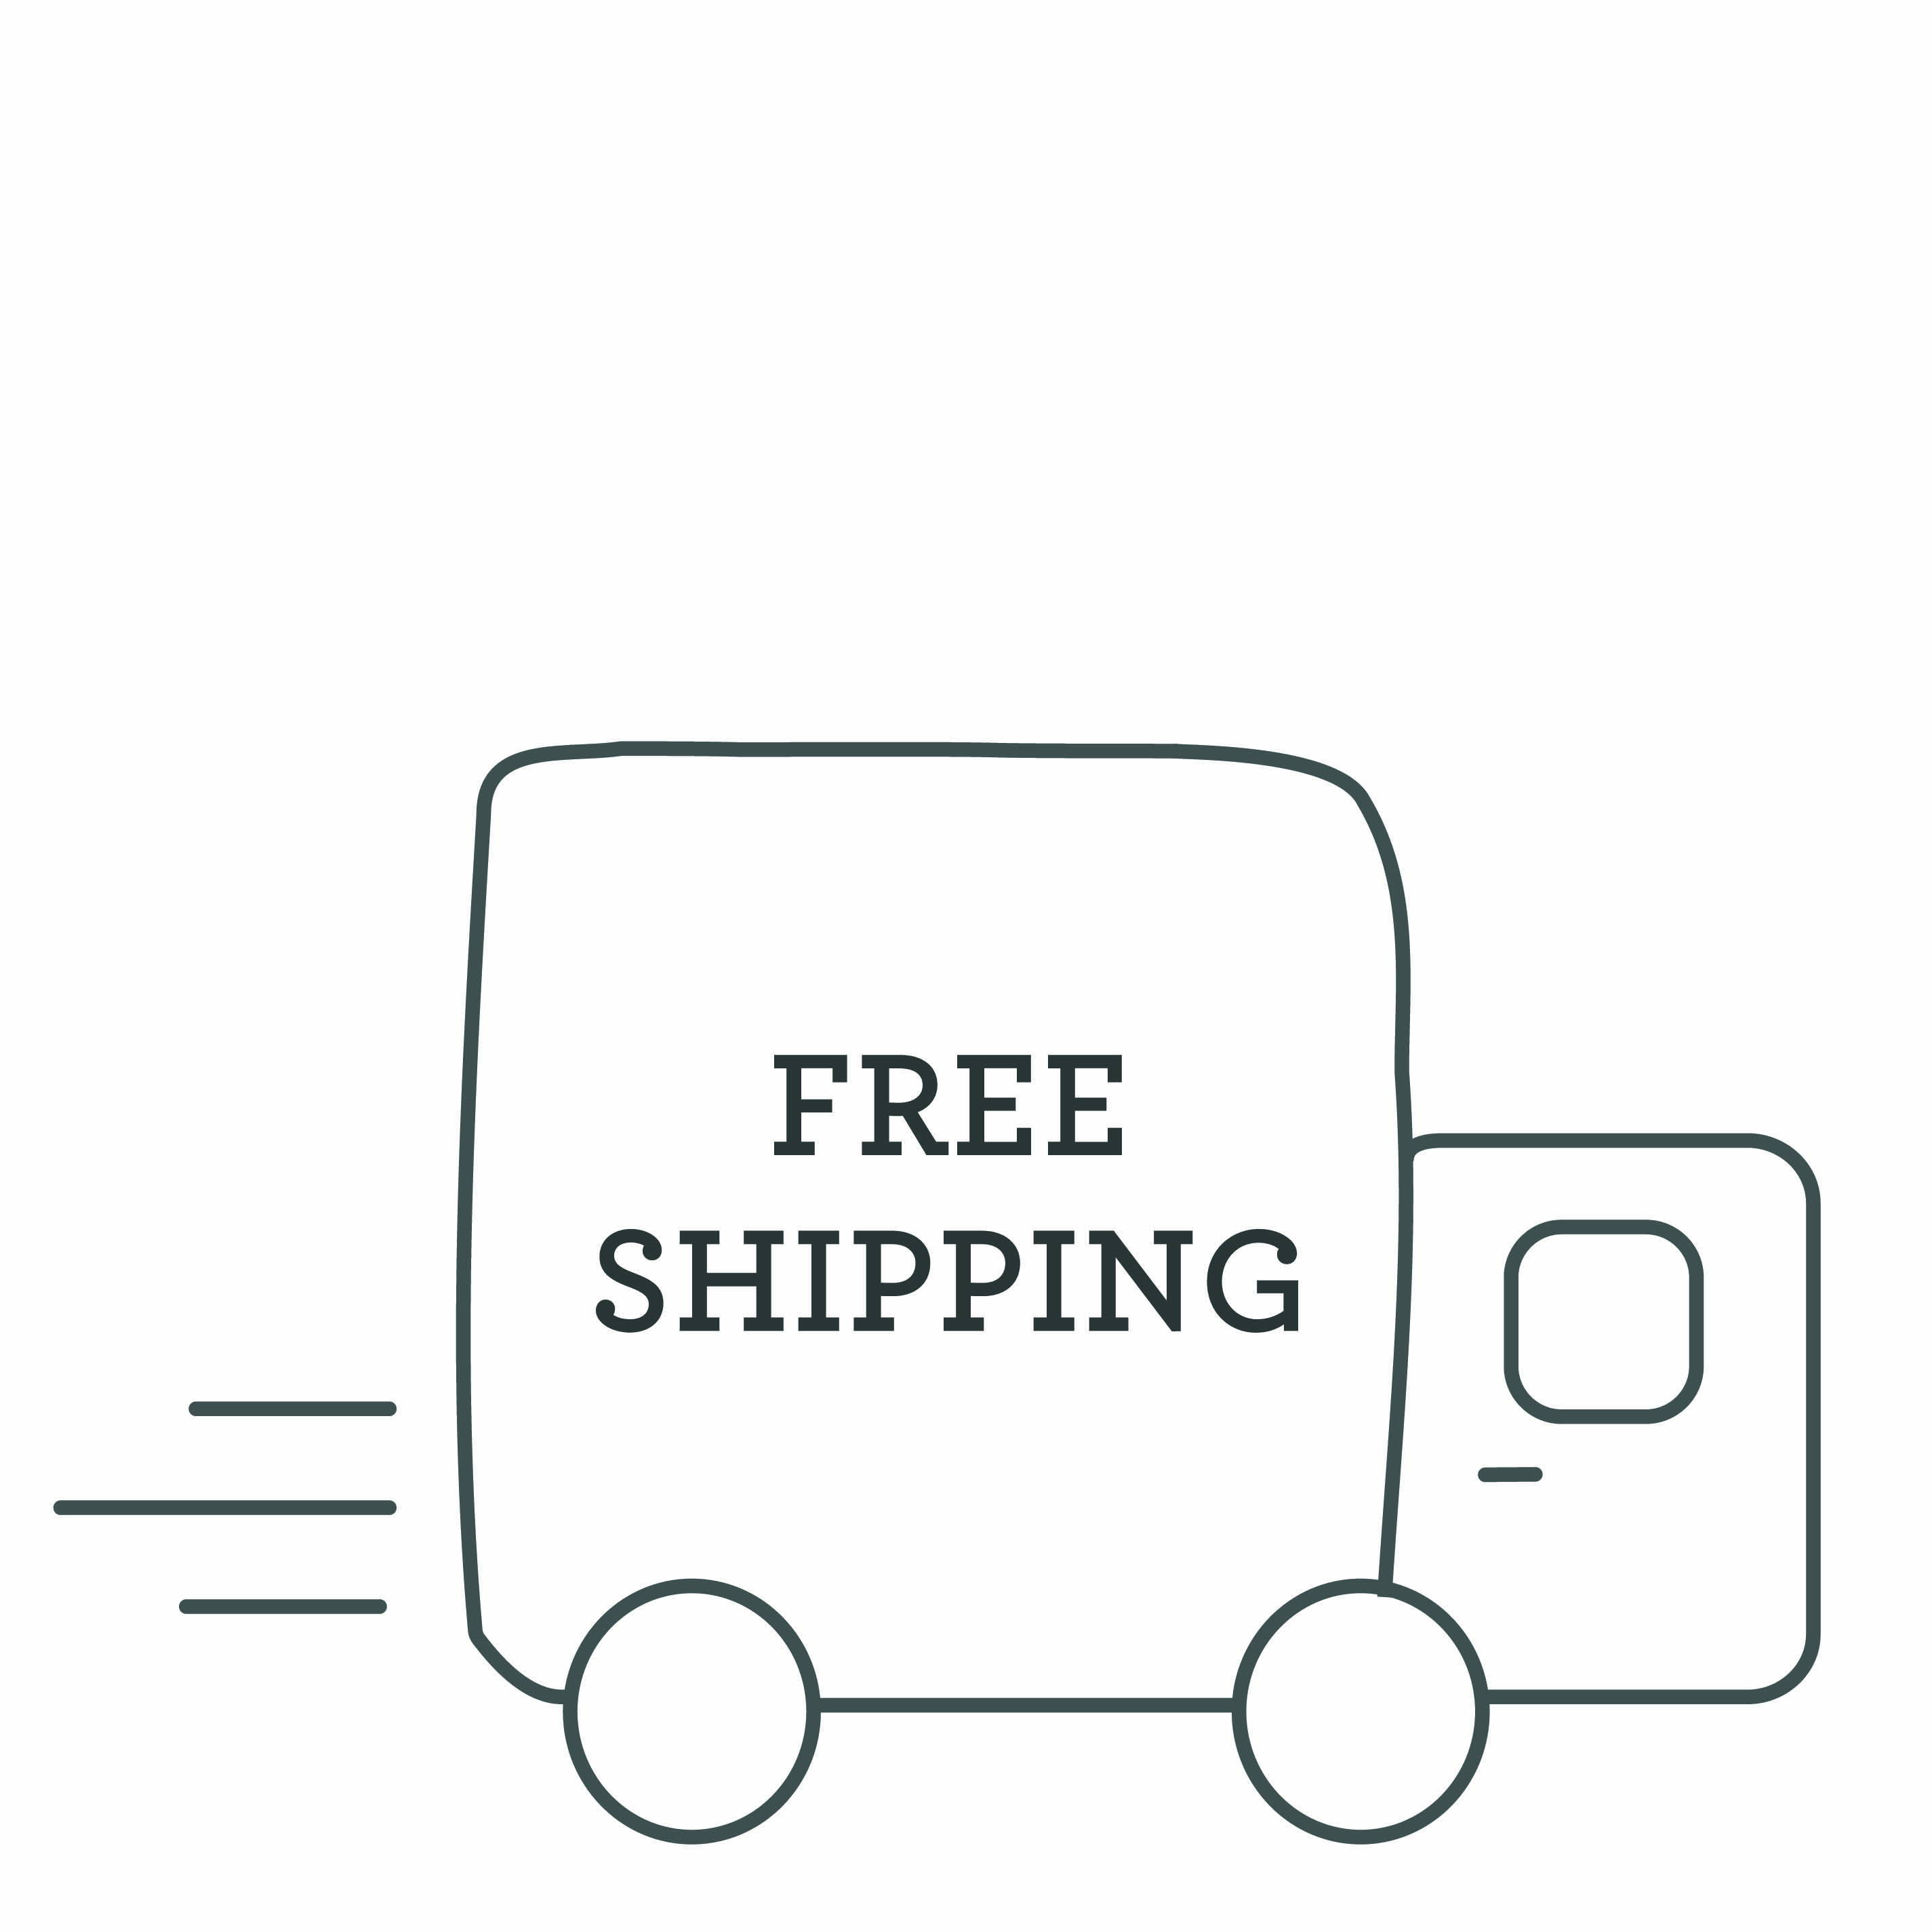 Free shipping icon. Illustration